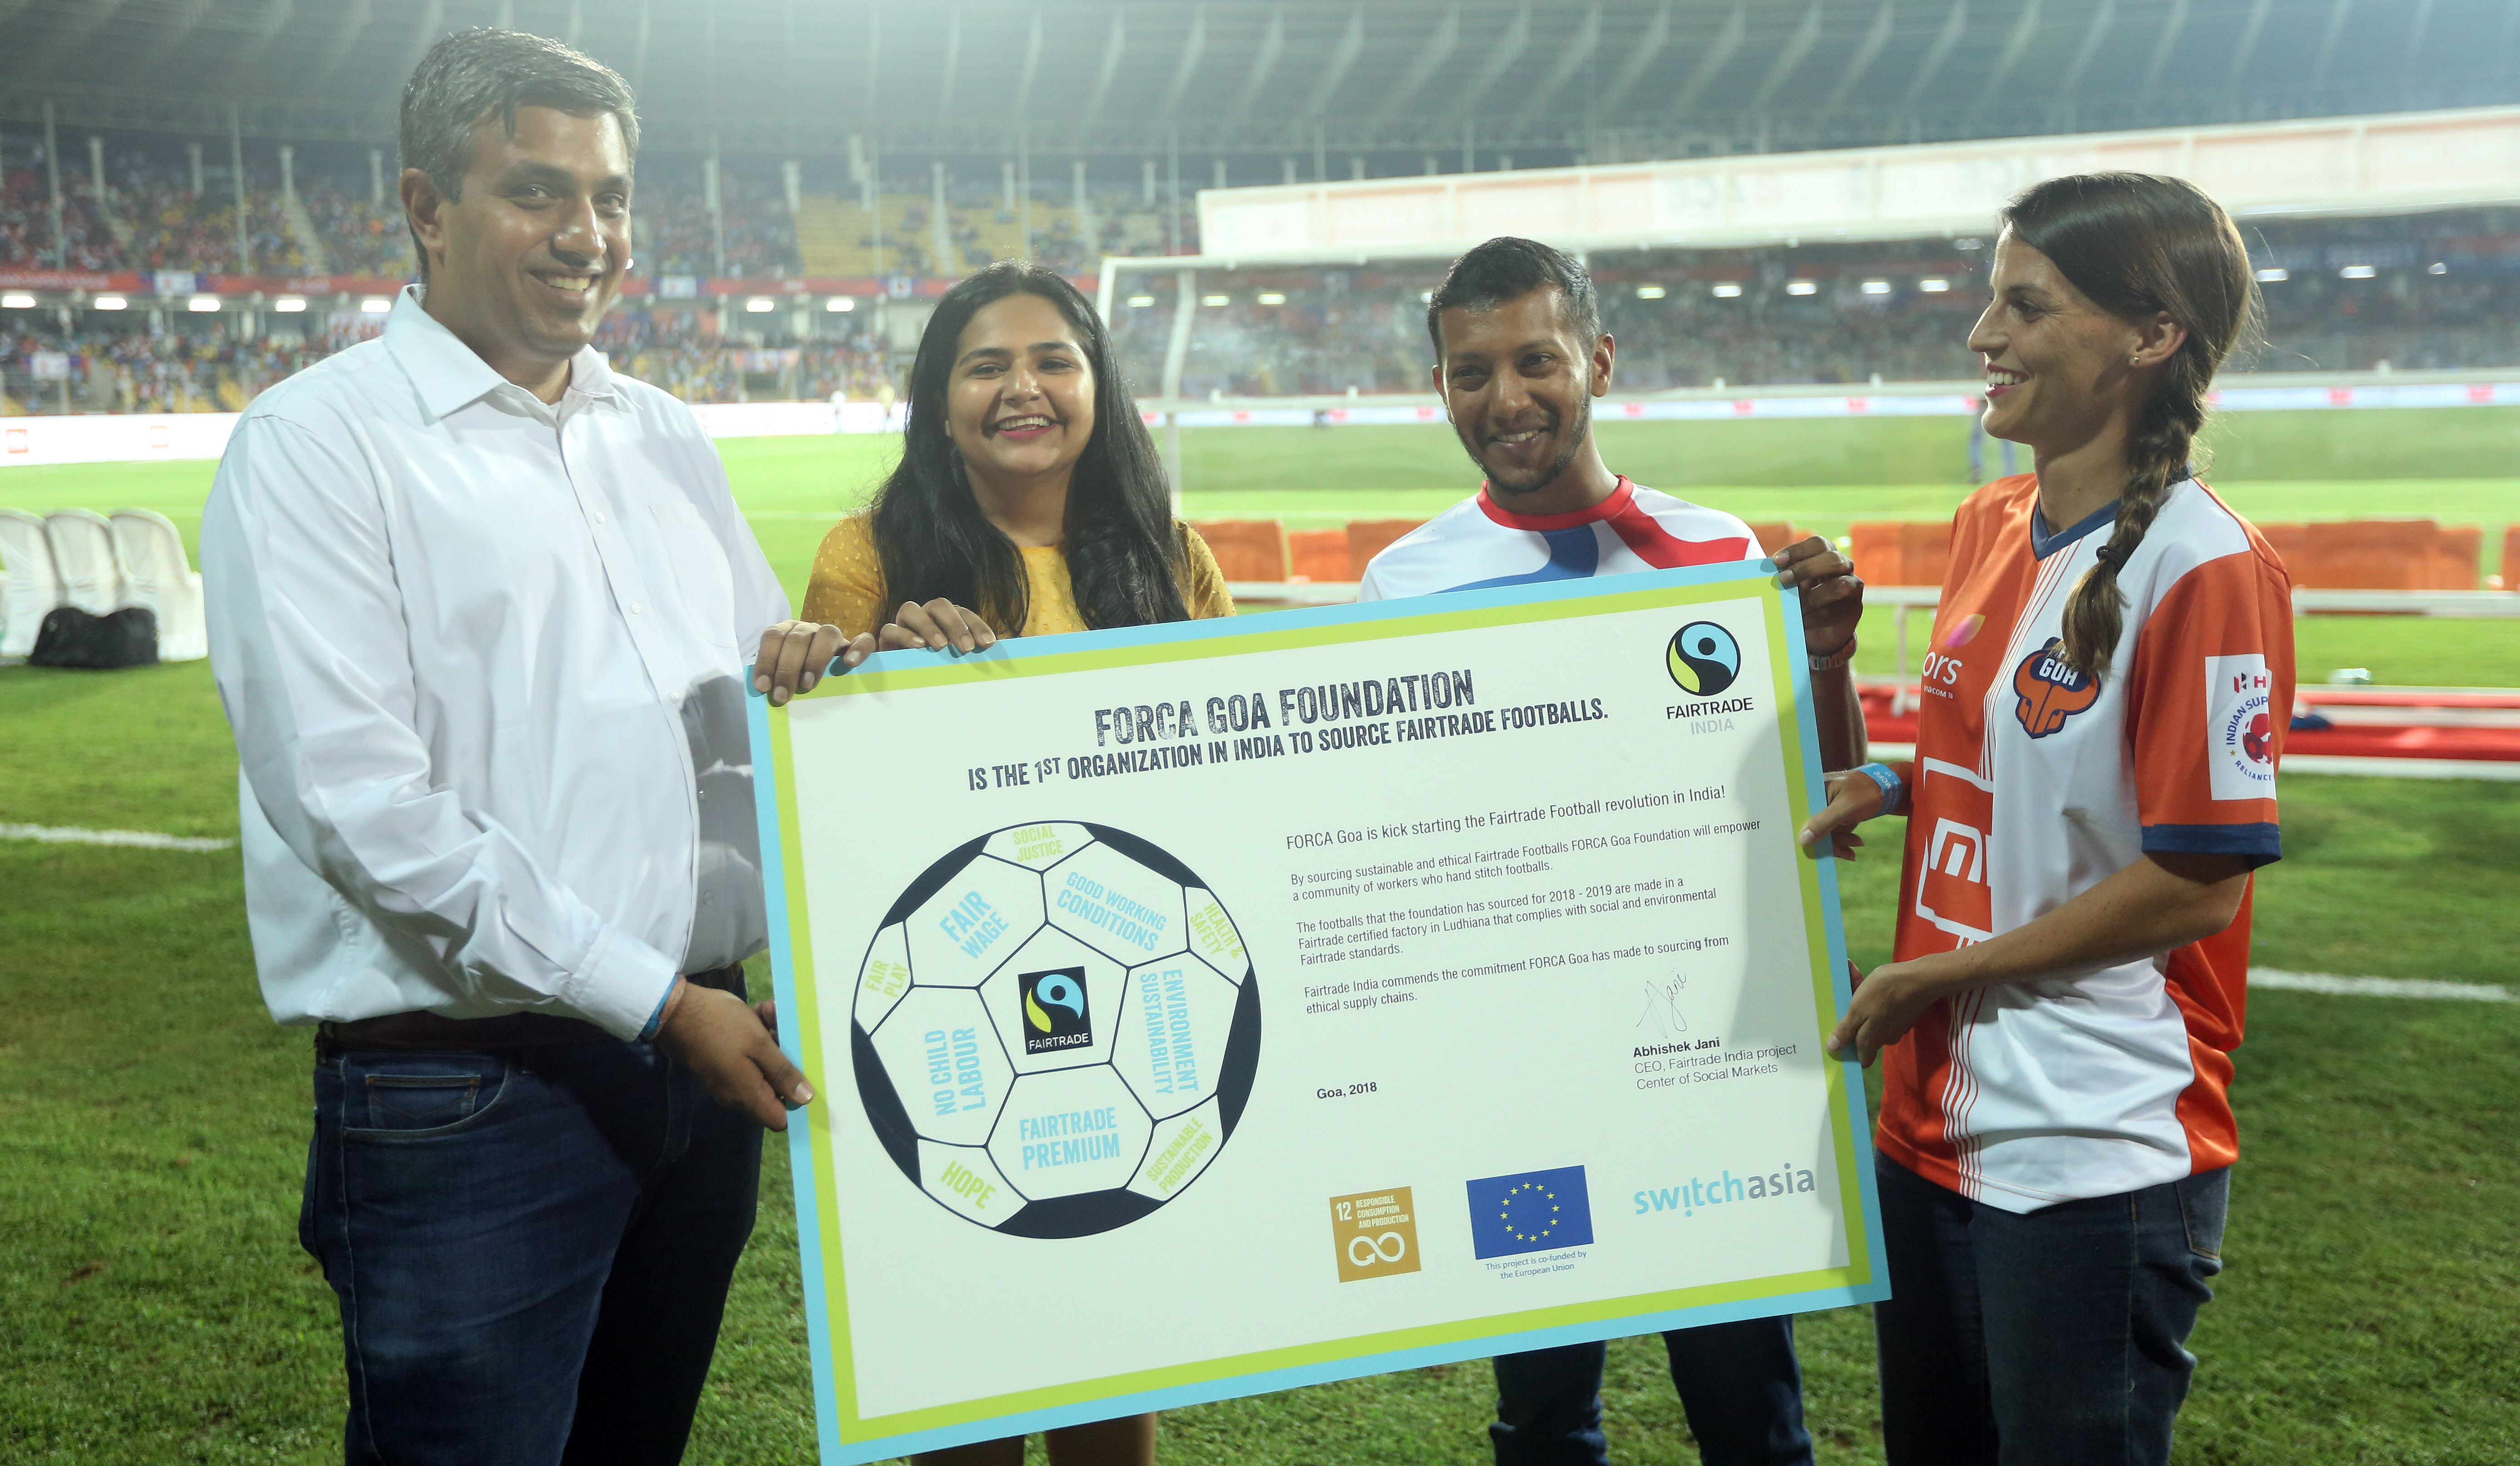 Abhishek and Debian from Fair Trade give memento to Jill and Nathan from Forca Goa Foundation during match 17 of the Hero Indian Super League 2018 ( ISL ) between FC Goa and Mumbai City FC held at Jawaharlal Nehru Stadium, Goa, India on the 24th October 2018 Photo credit: Sandeep Shetty /SPORTZPICS for ISL